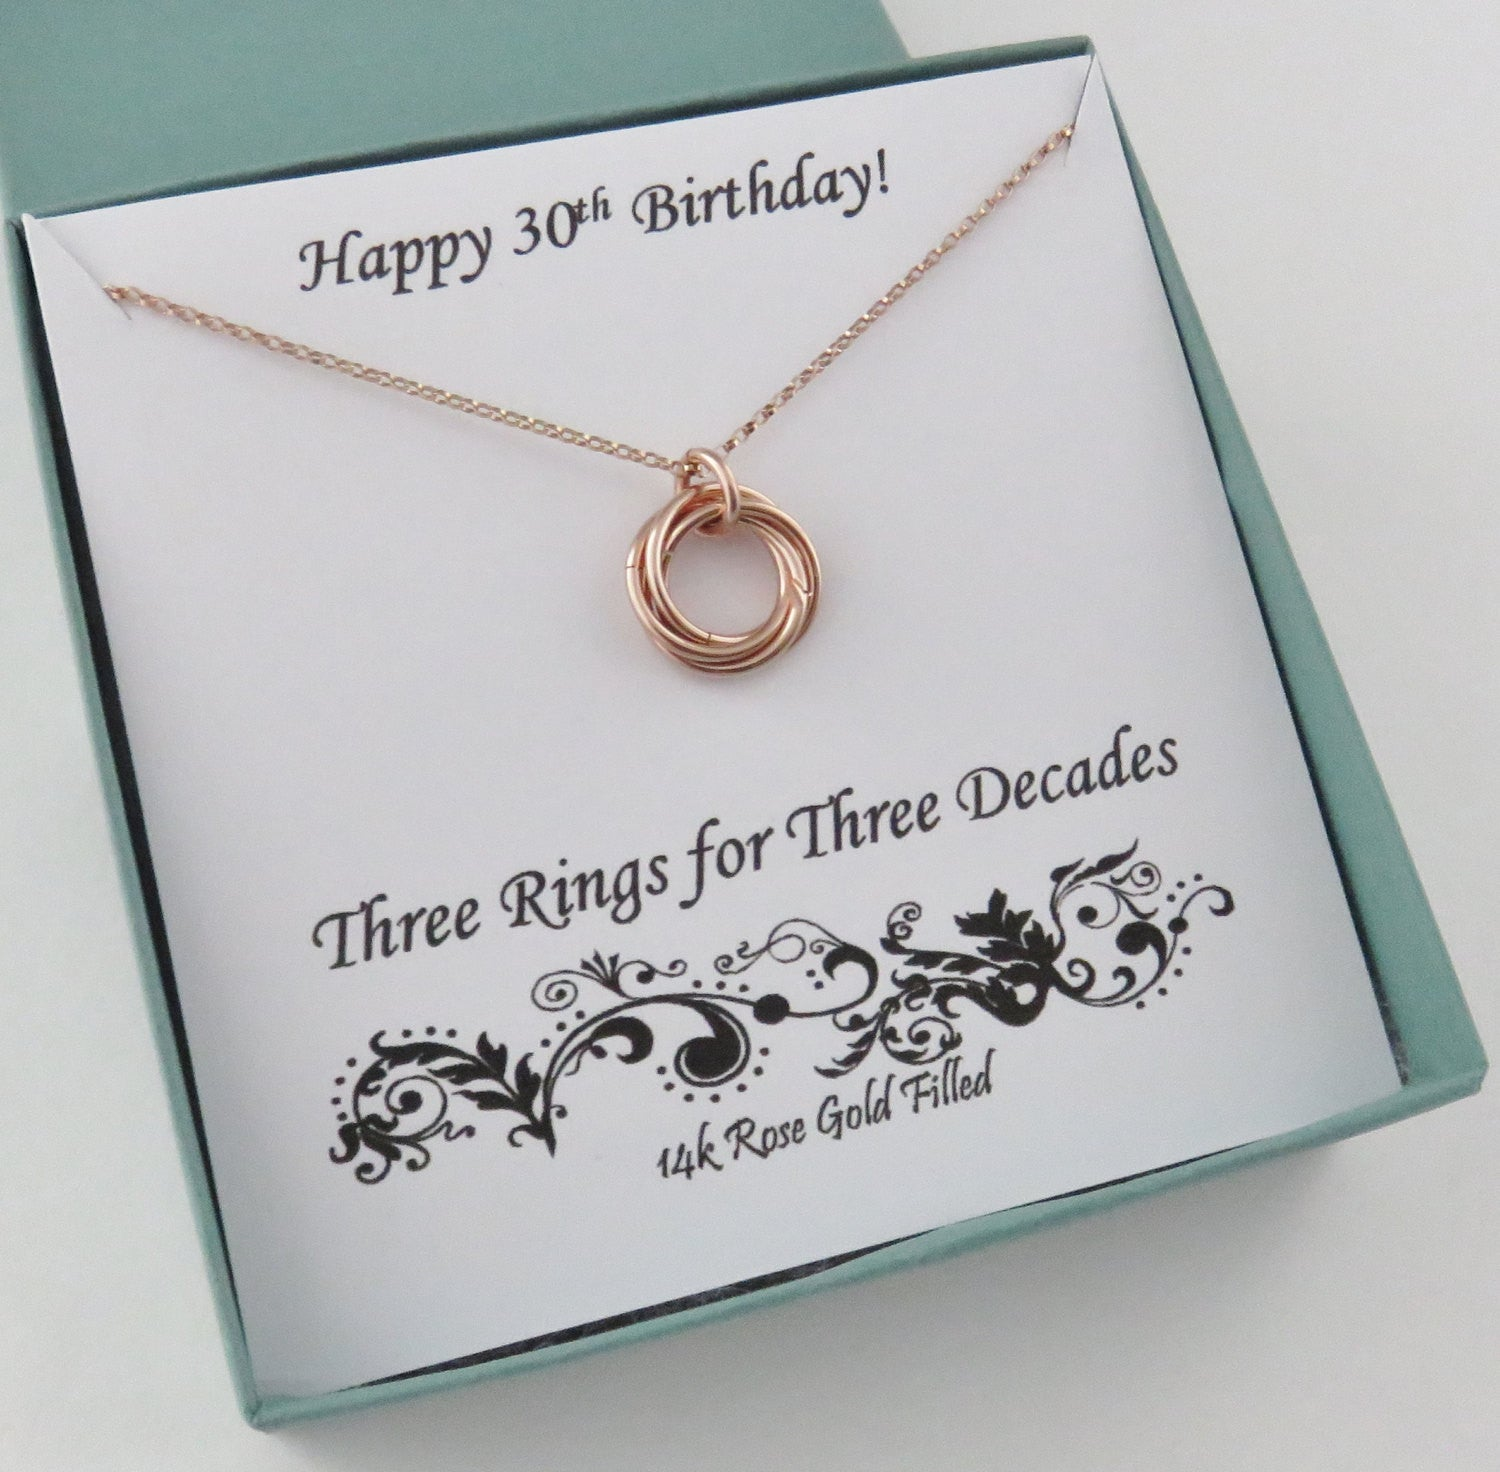 17 Colorful 30th Birthday Gift Ideas For Sister Images OOPS NEWS